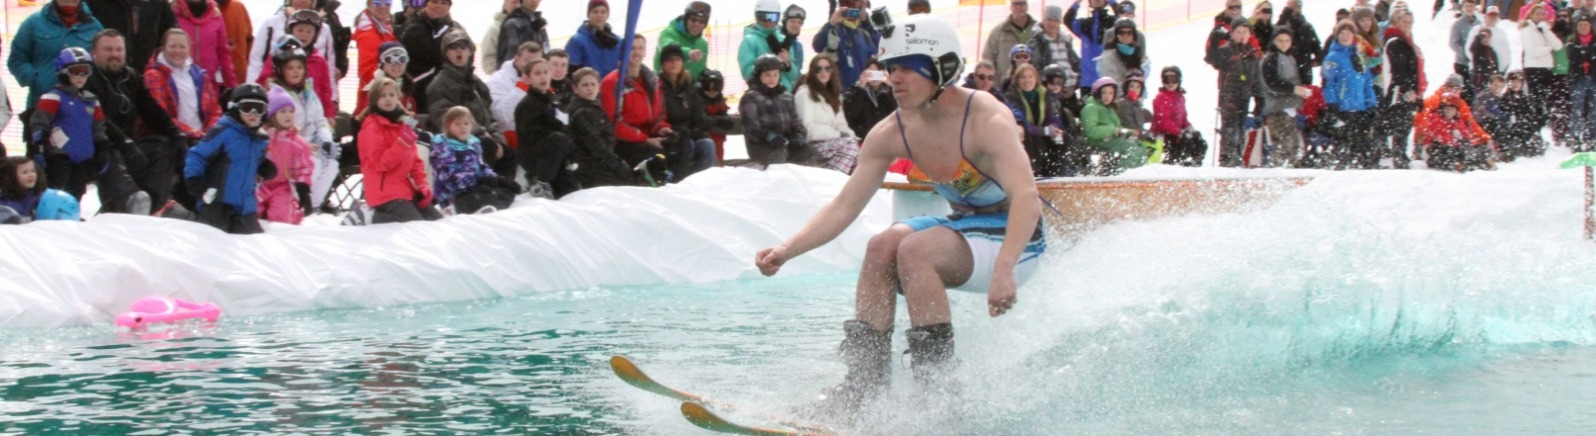 Crowd cheers on Mt. Hood Skibowl's Snow Beach Festival contestant as he tries skiing across pond of freezing water